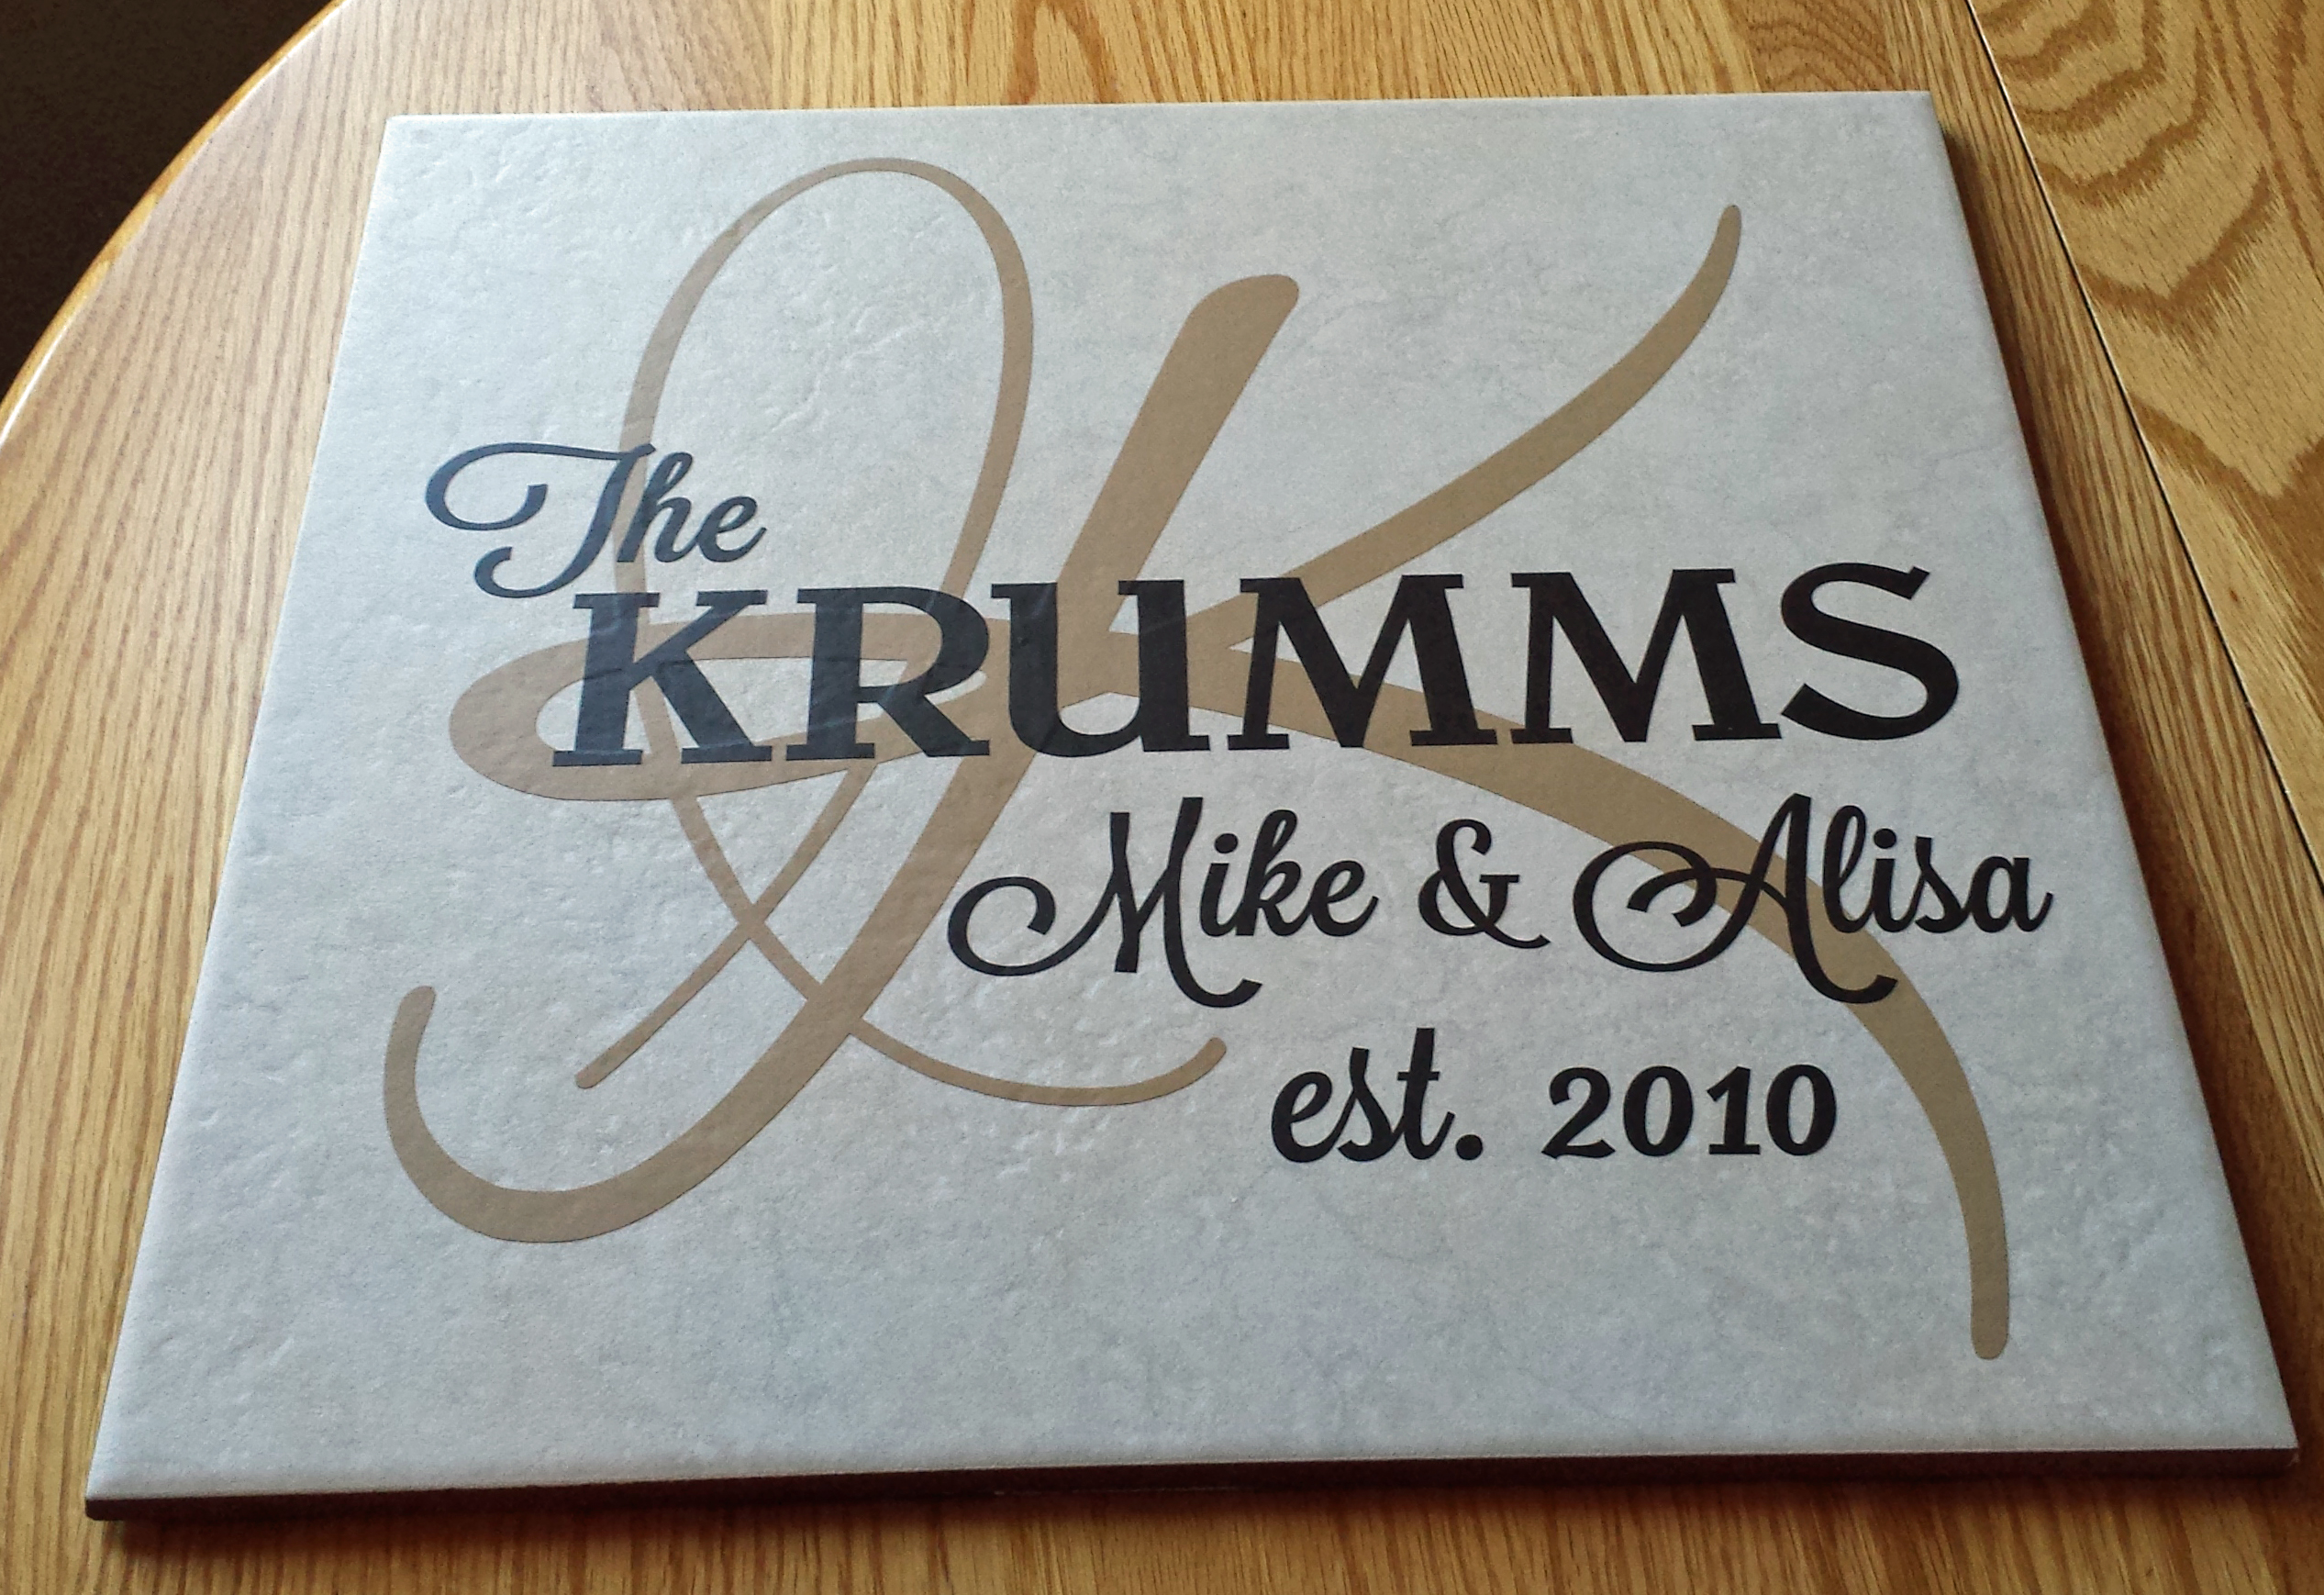 custom-tile-decal-design-family-name-and-date-krumms-wd309.jpg